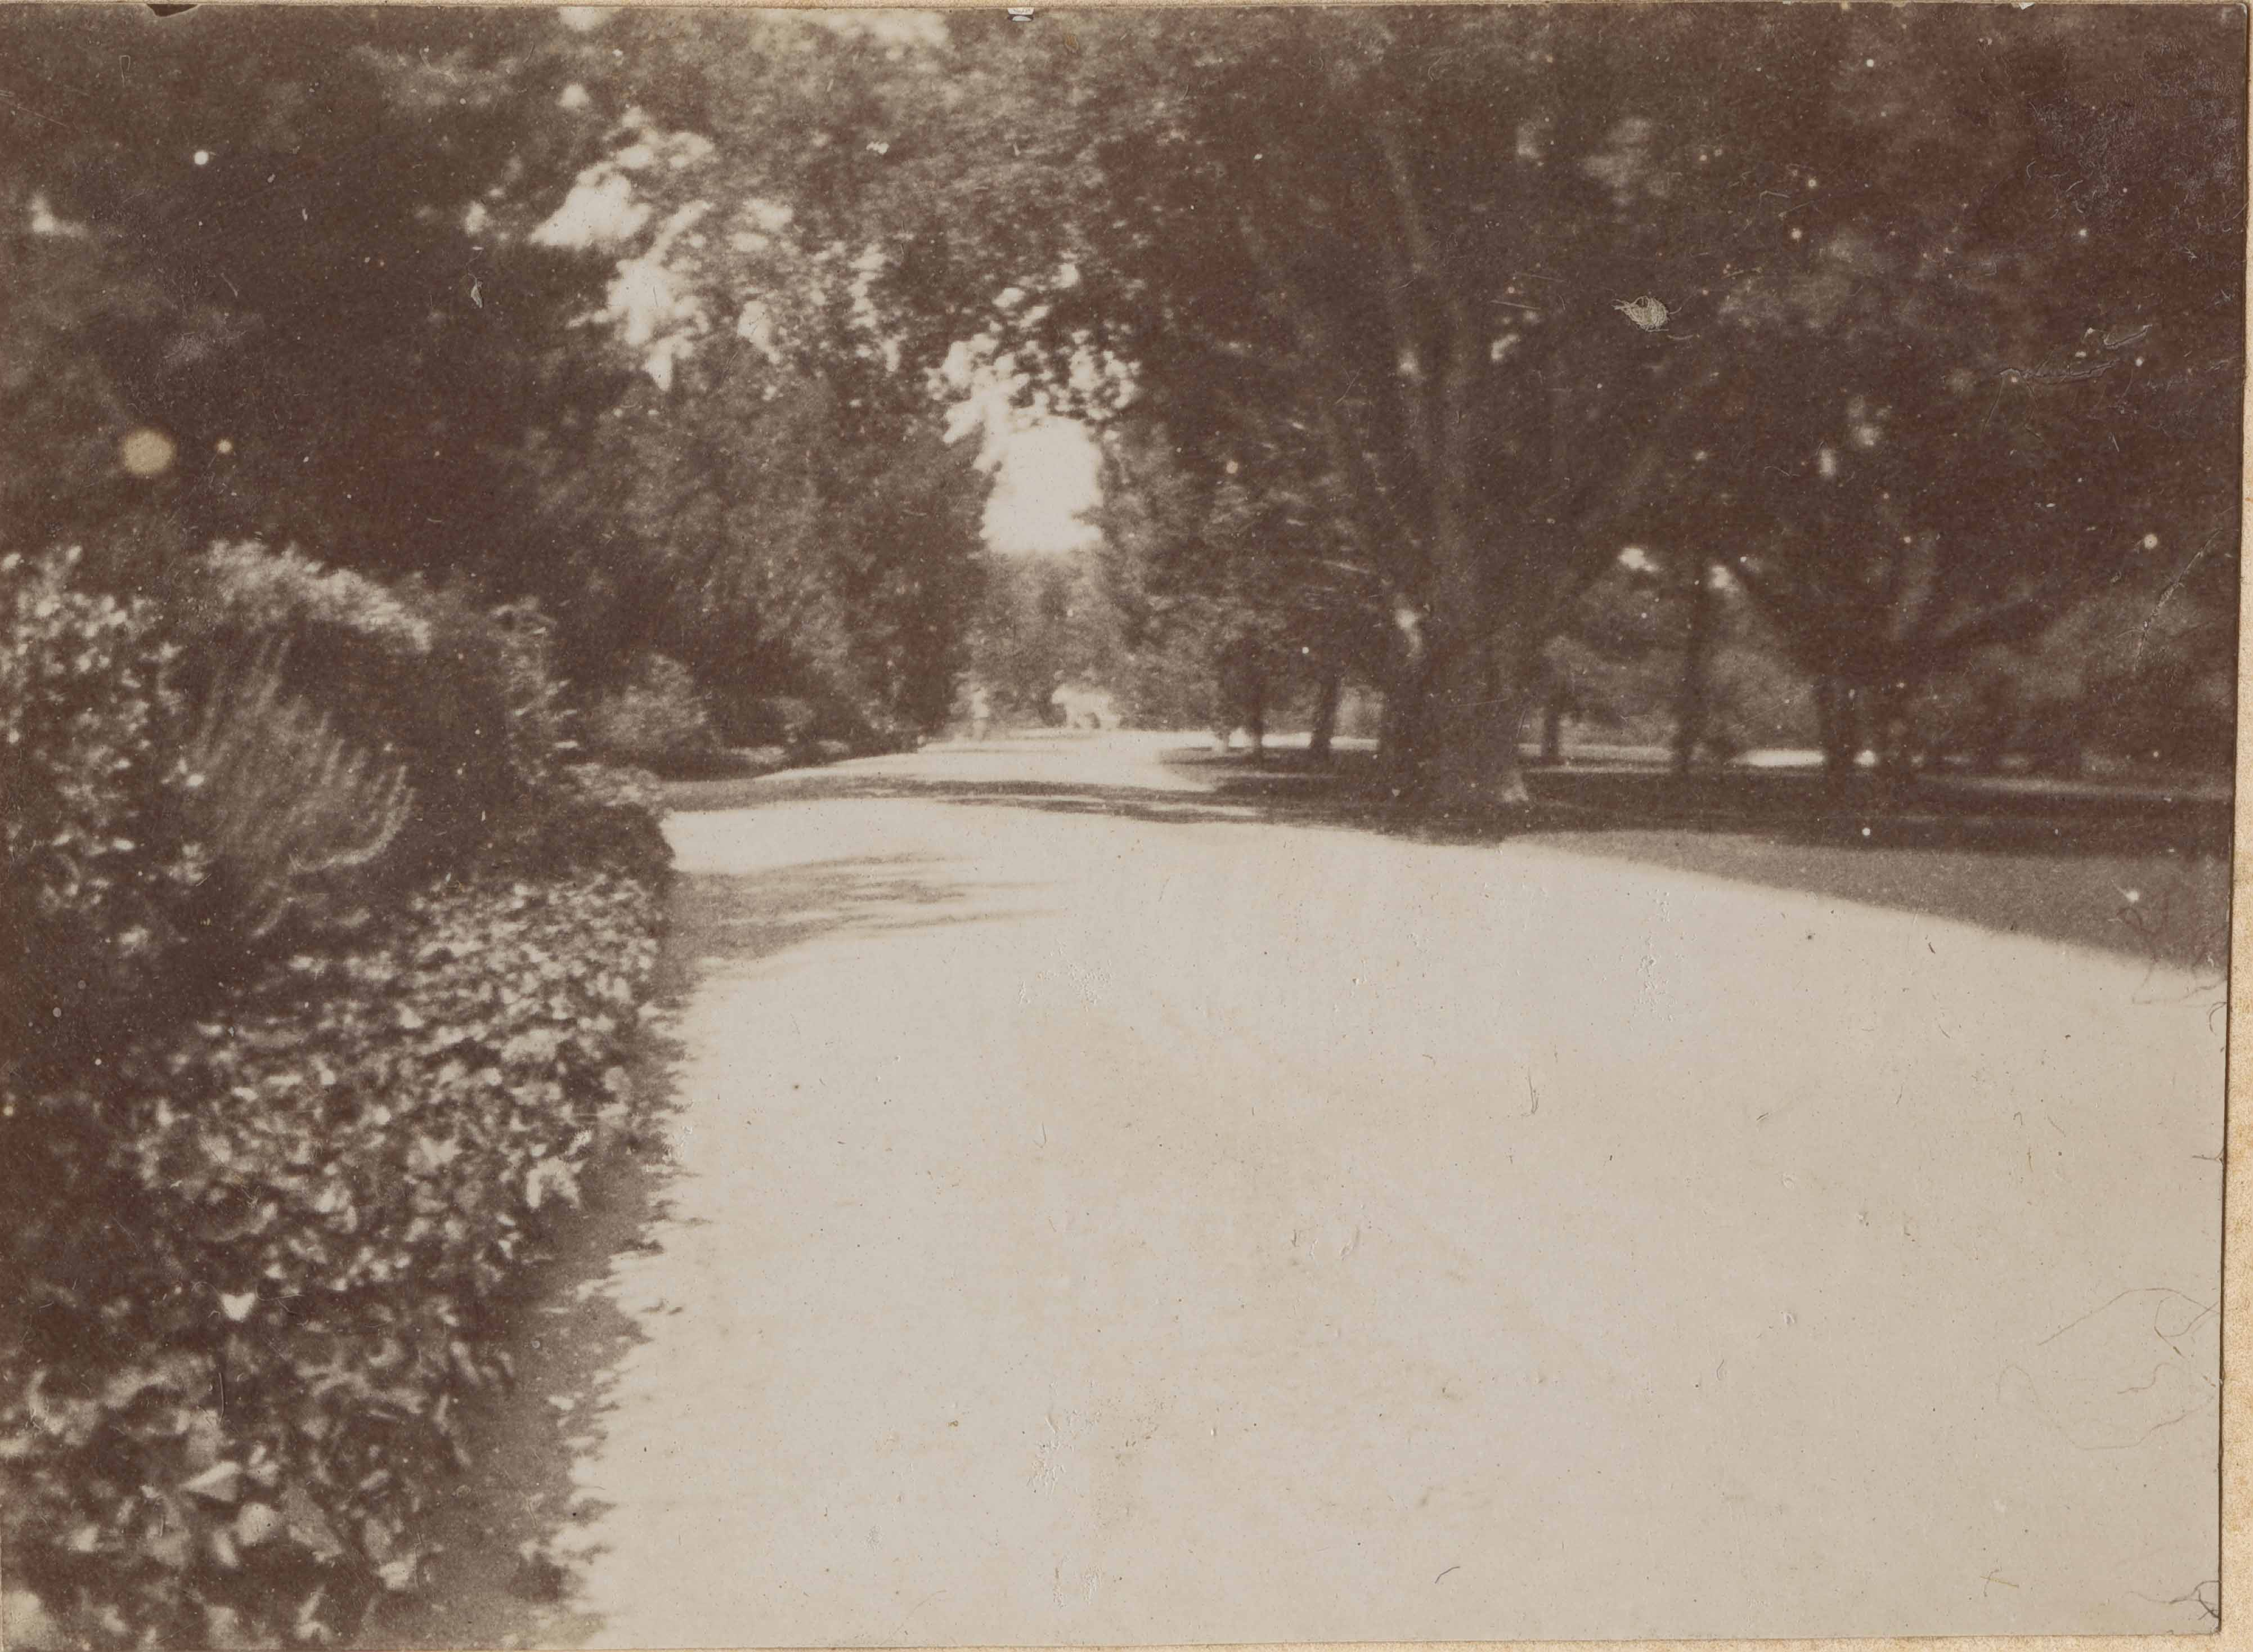 Road bordered by trees and shrubs